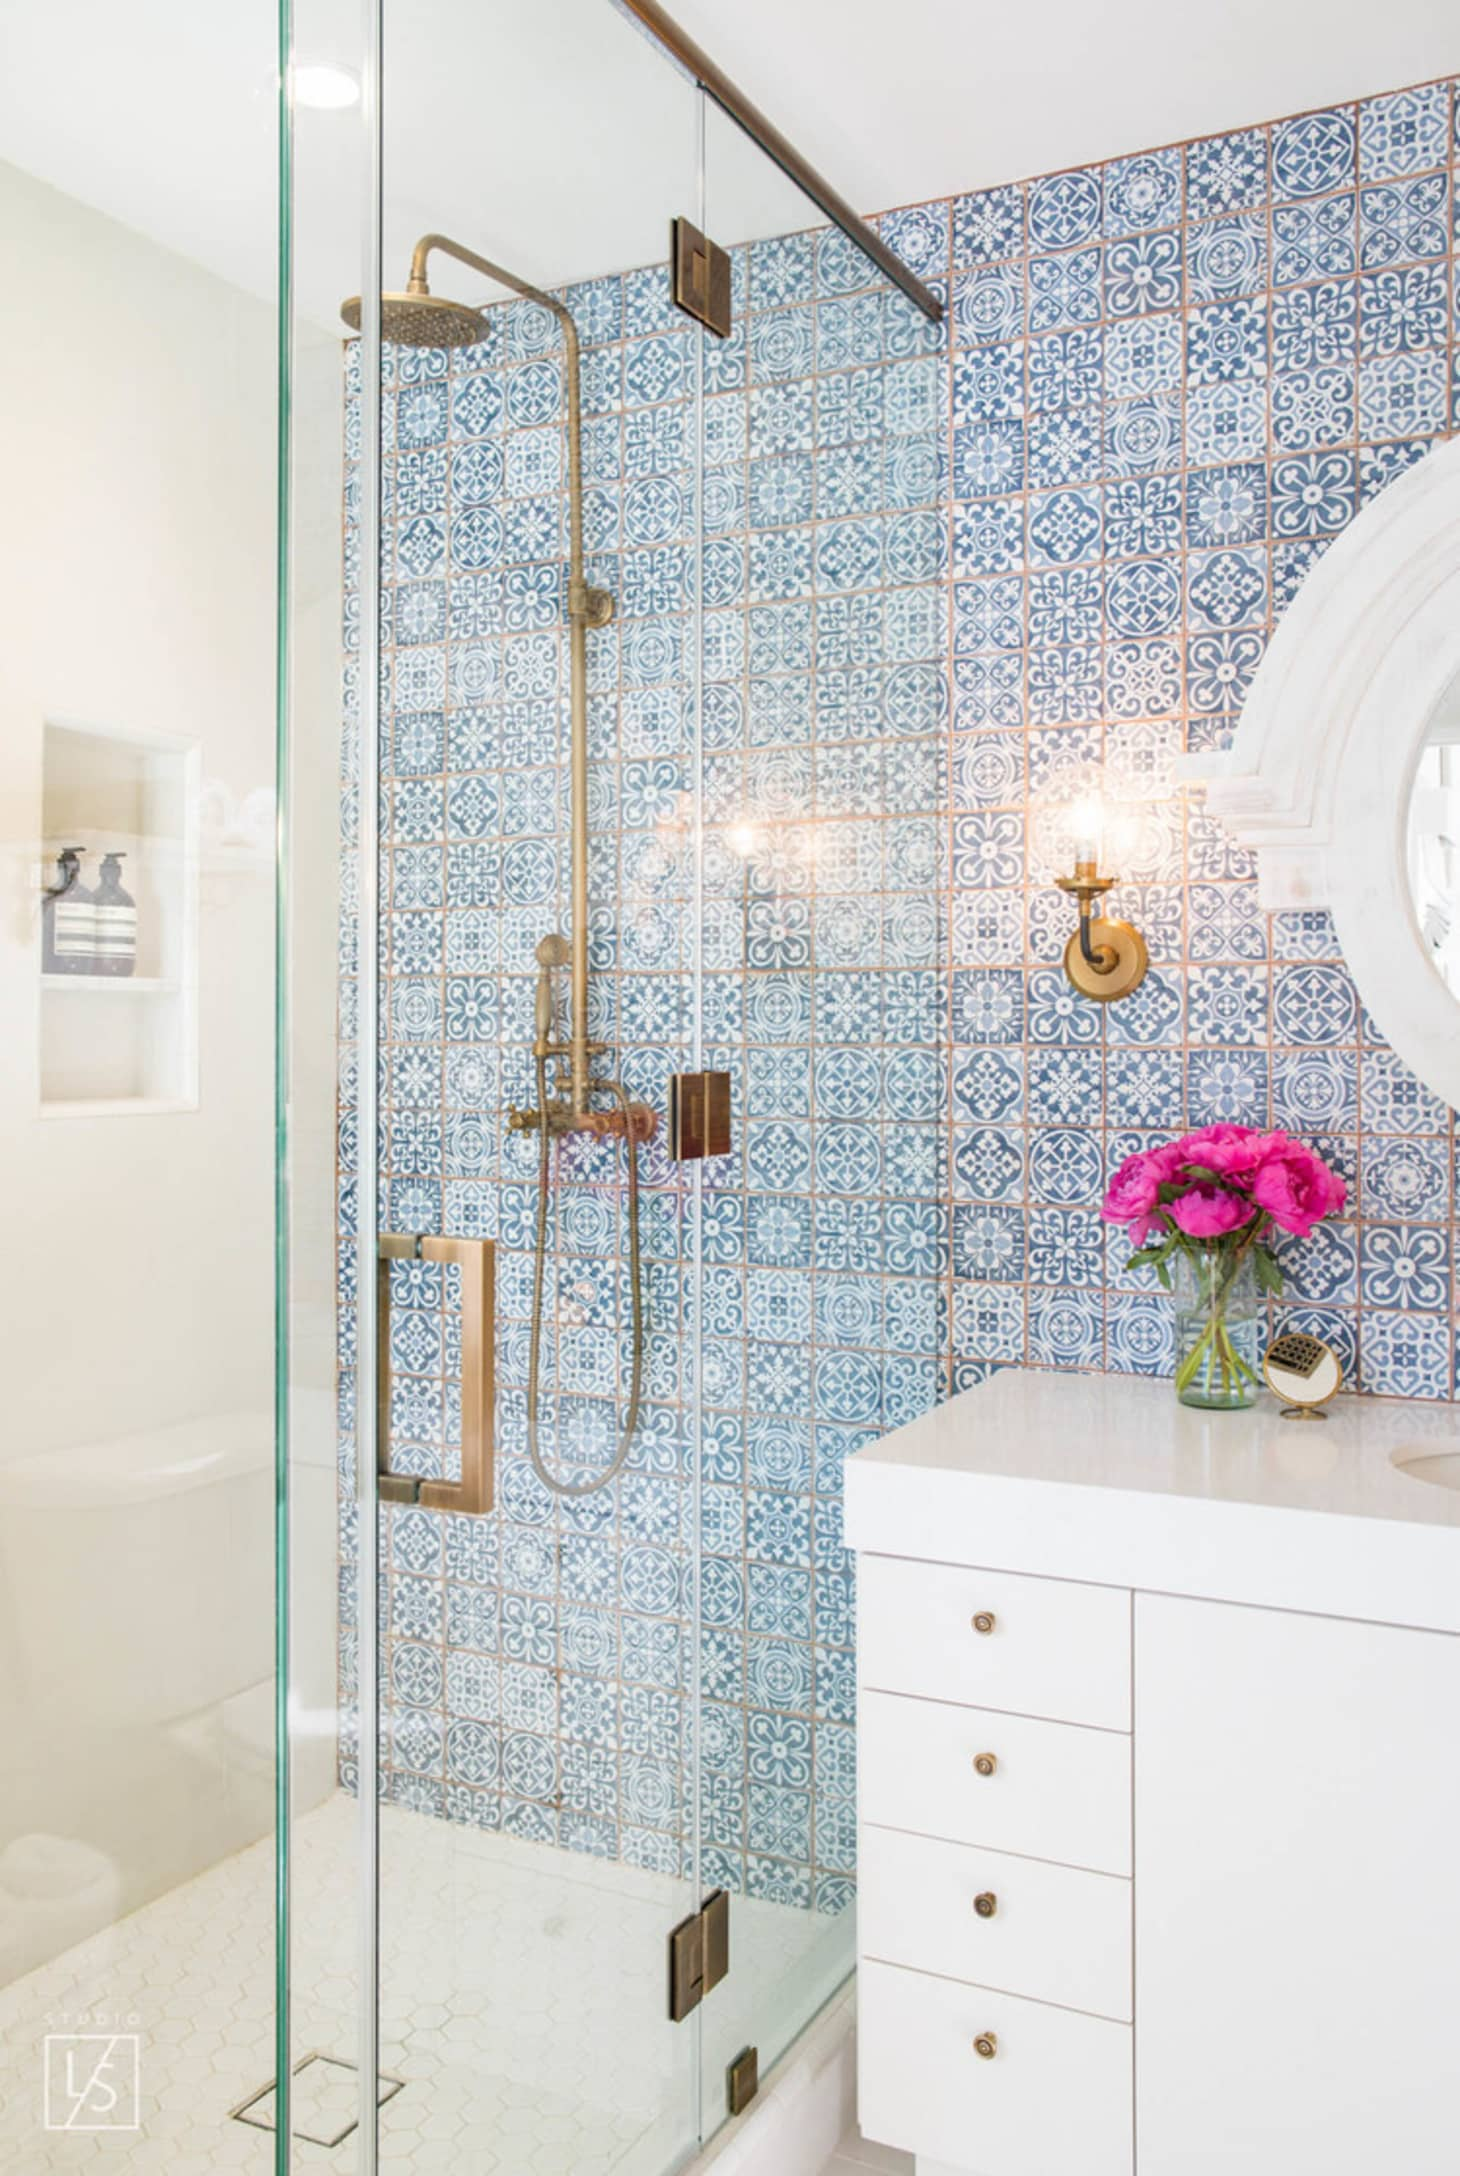 Stylish Remodeling Ideas for Small Bathrooms | Apartment ...